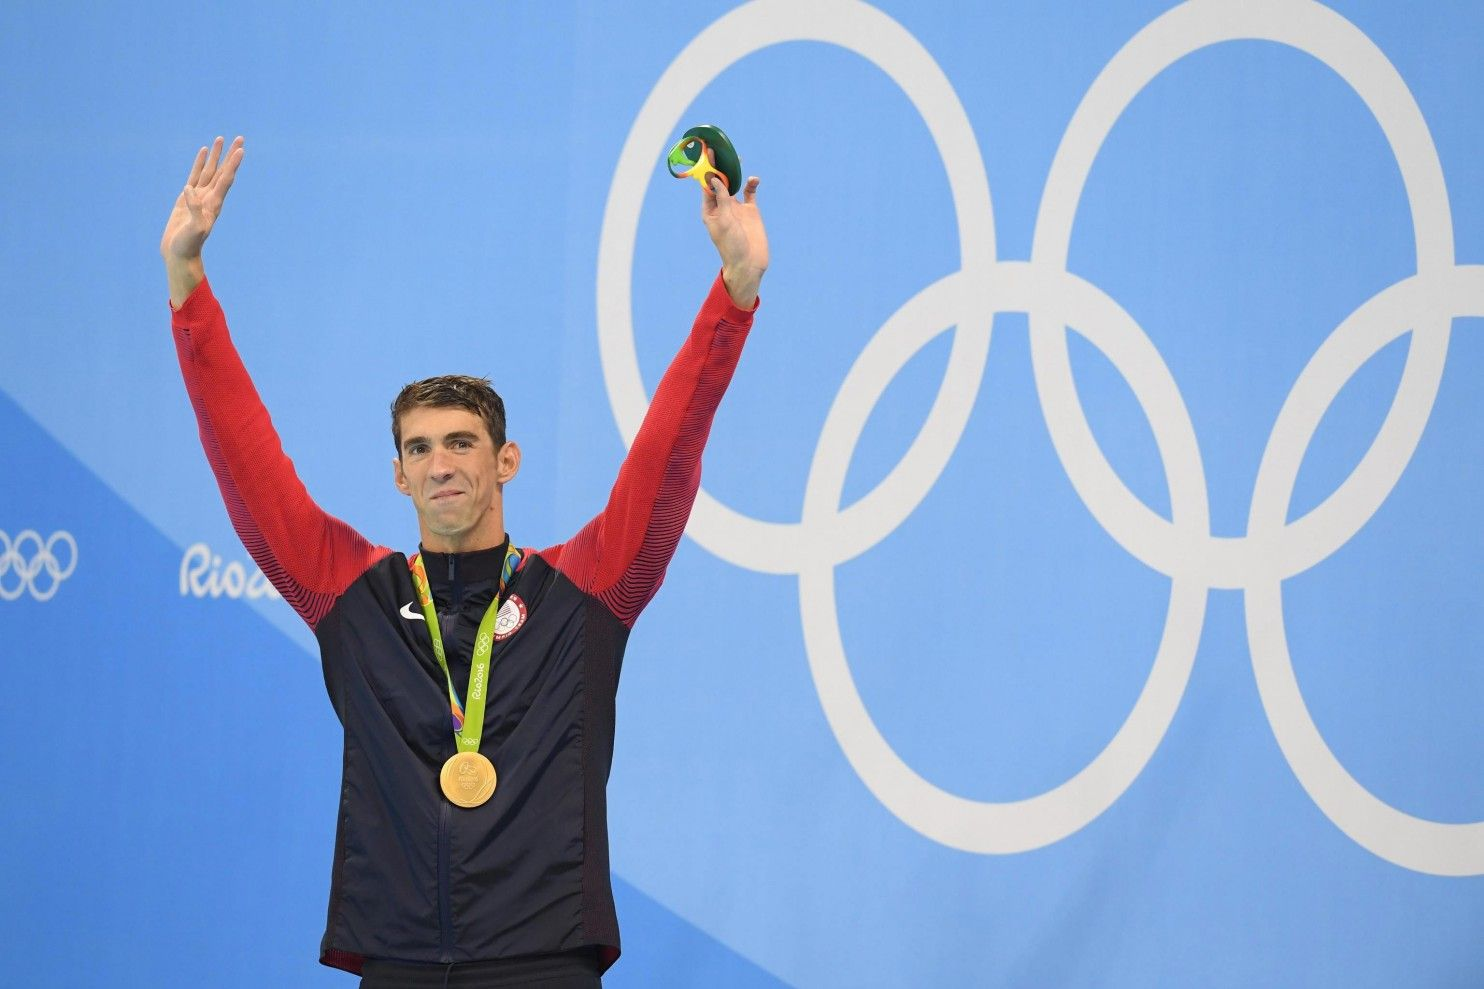 Michael Phelps records